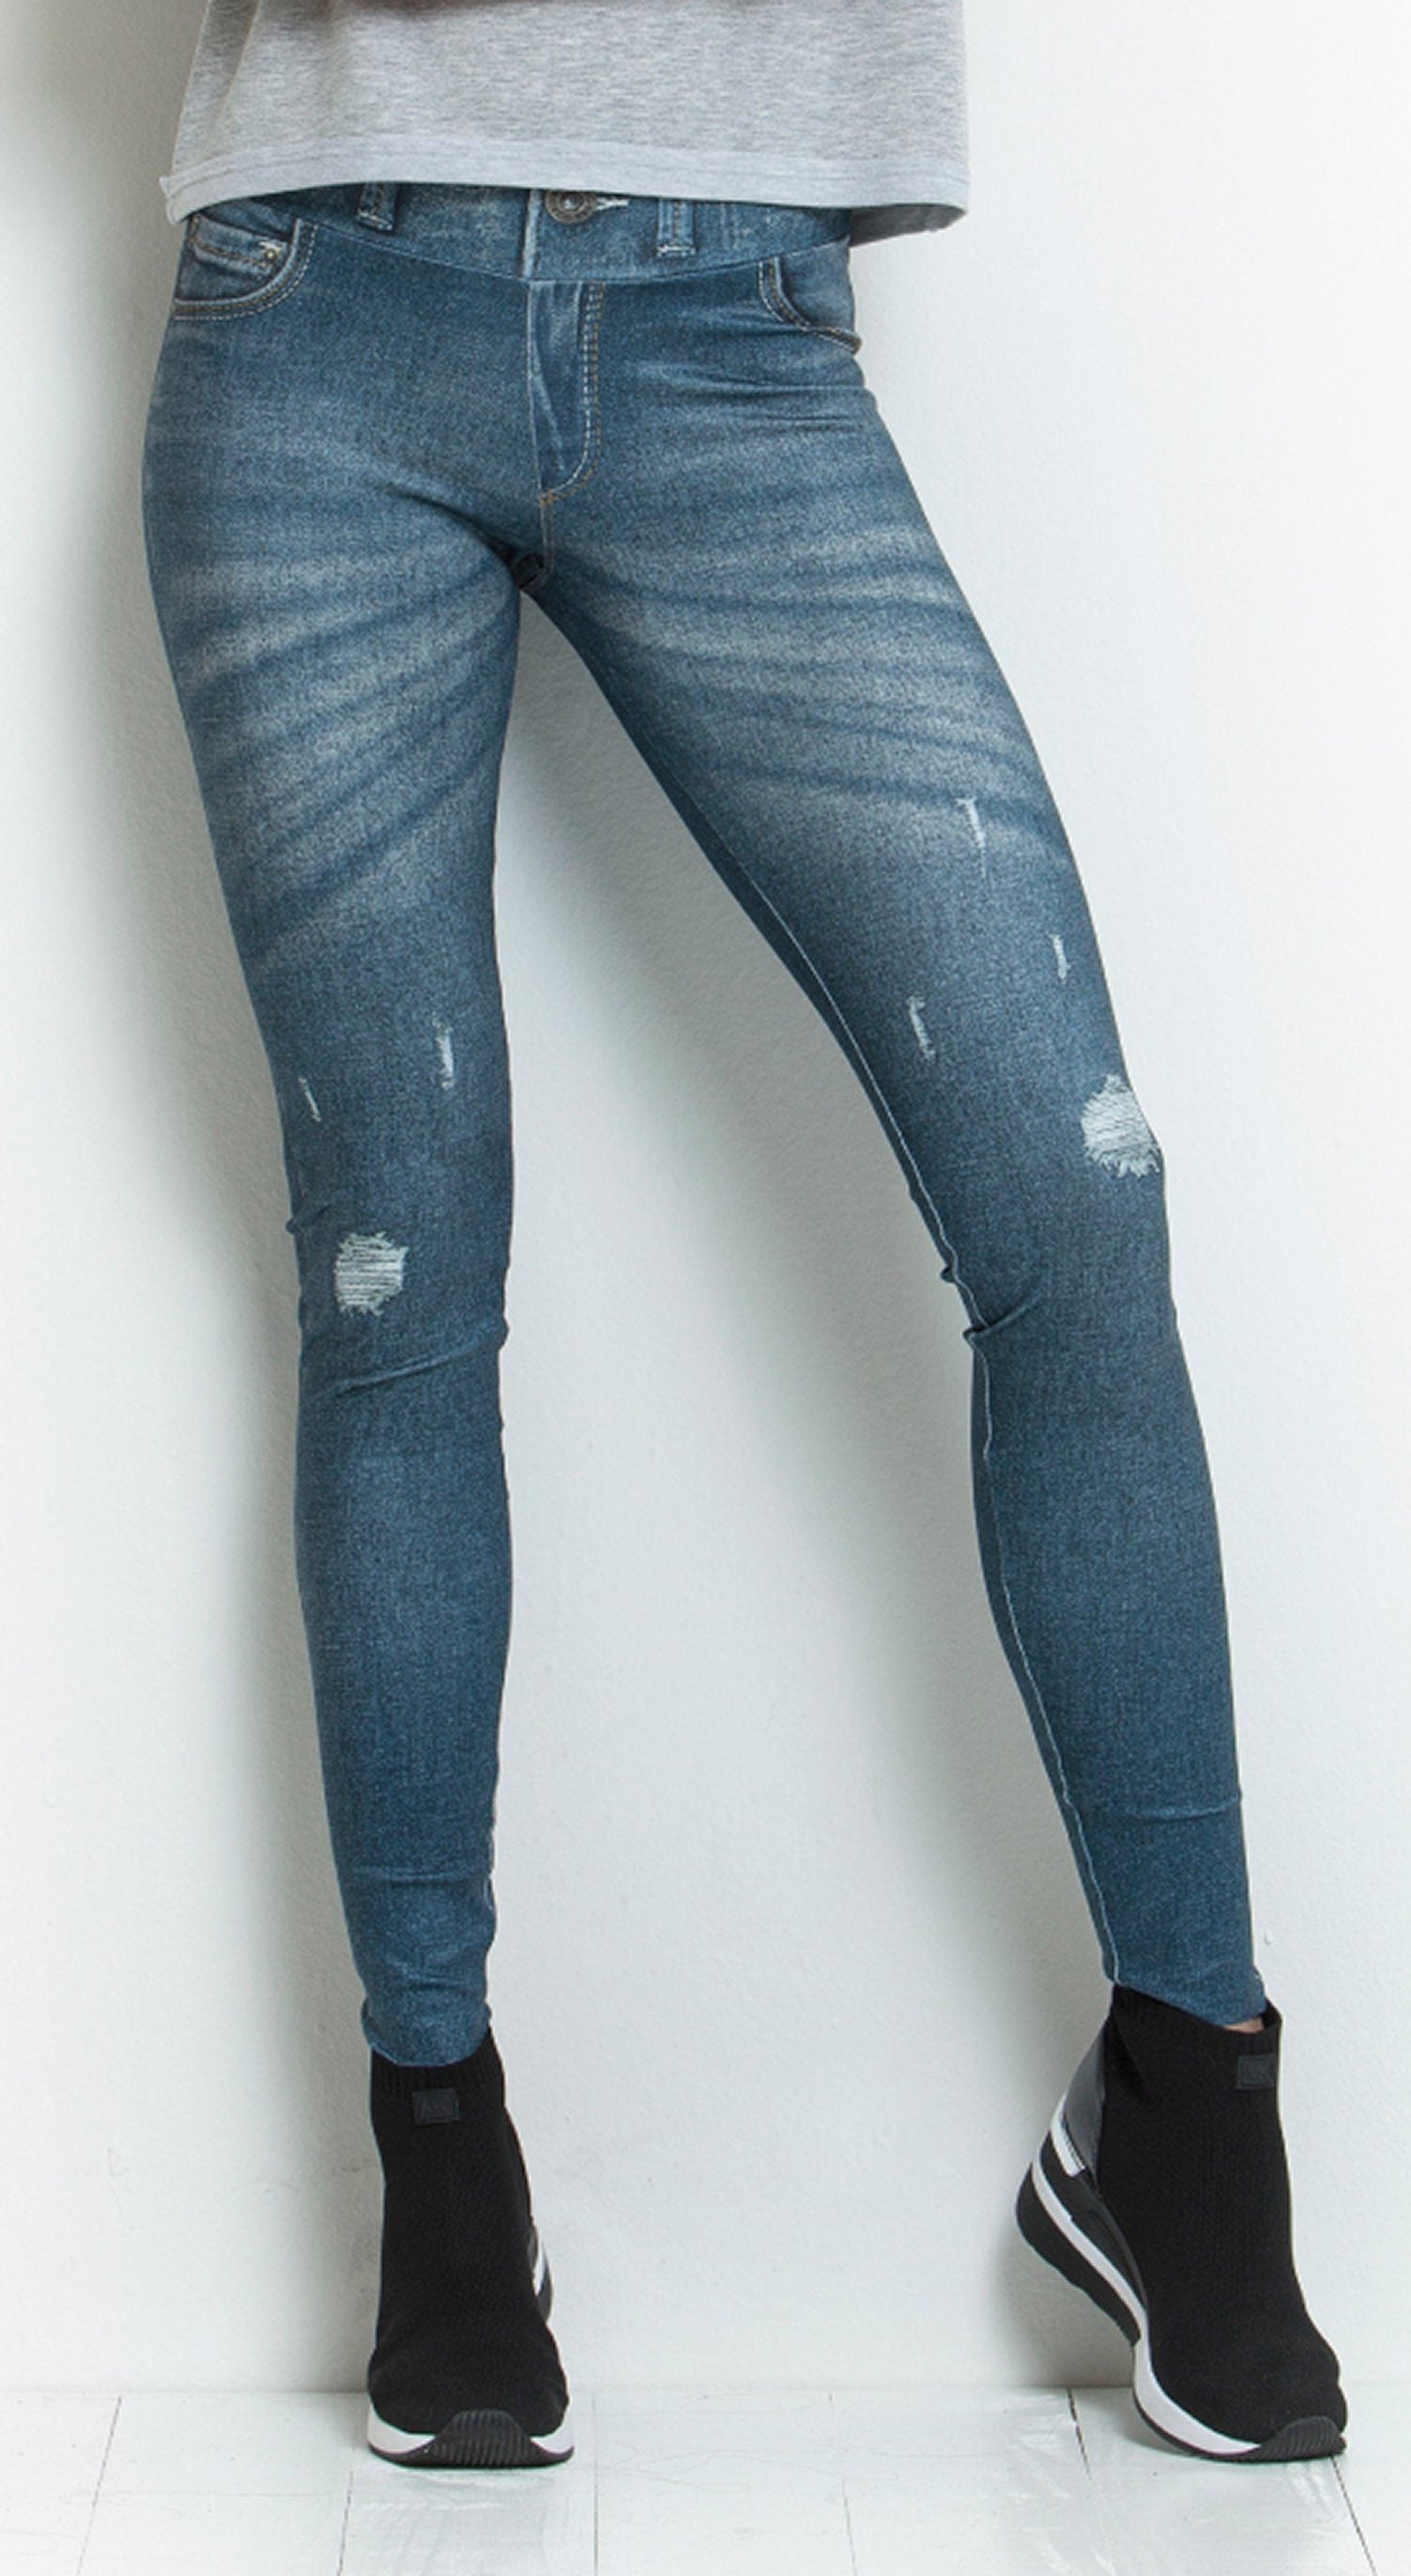 Brazilian Fake Jeans - The Original II